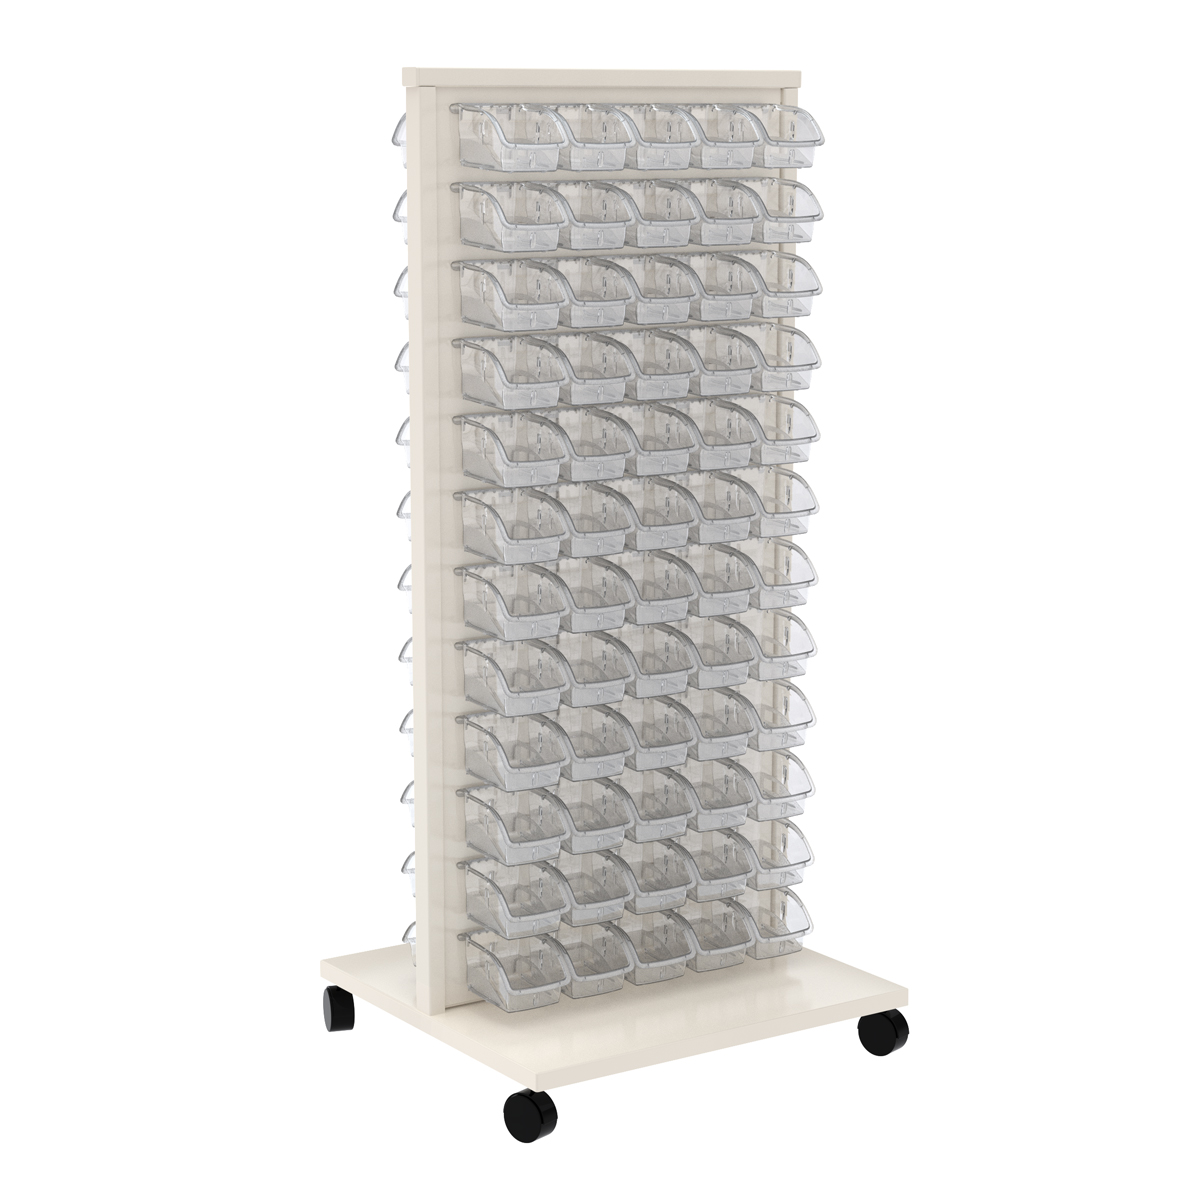 Item DISCONTINUED by Manufacturer.  ReadySpace Floor Unit w/ 120 InSight Bins 305A1, White/Clear (30553A1).  This item sold in carton quantities of 1.